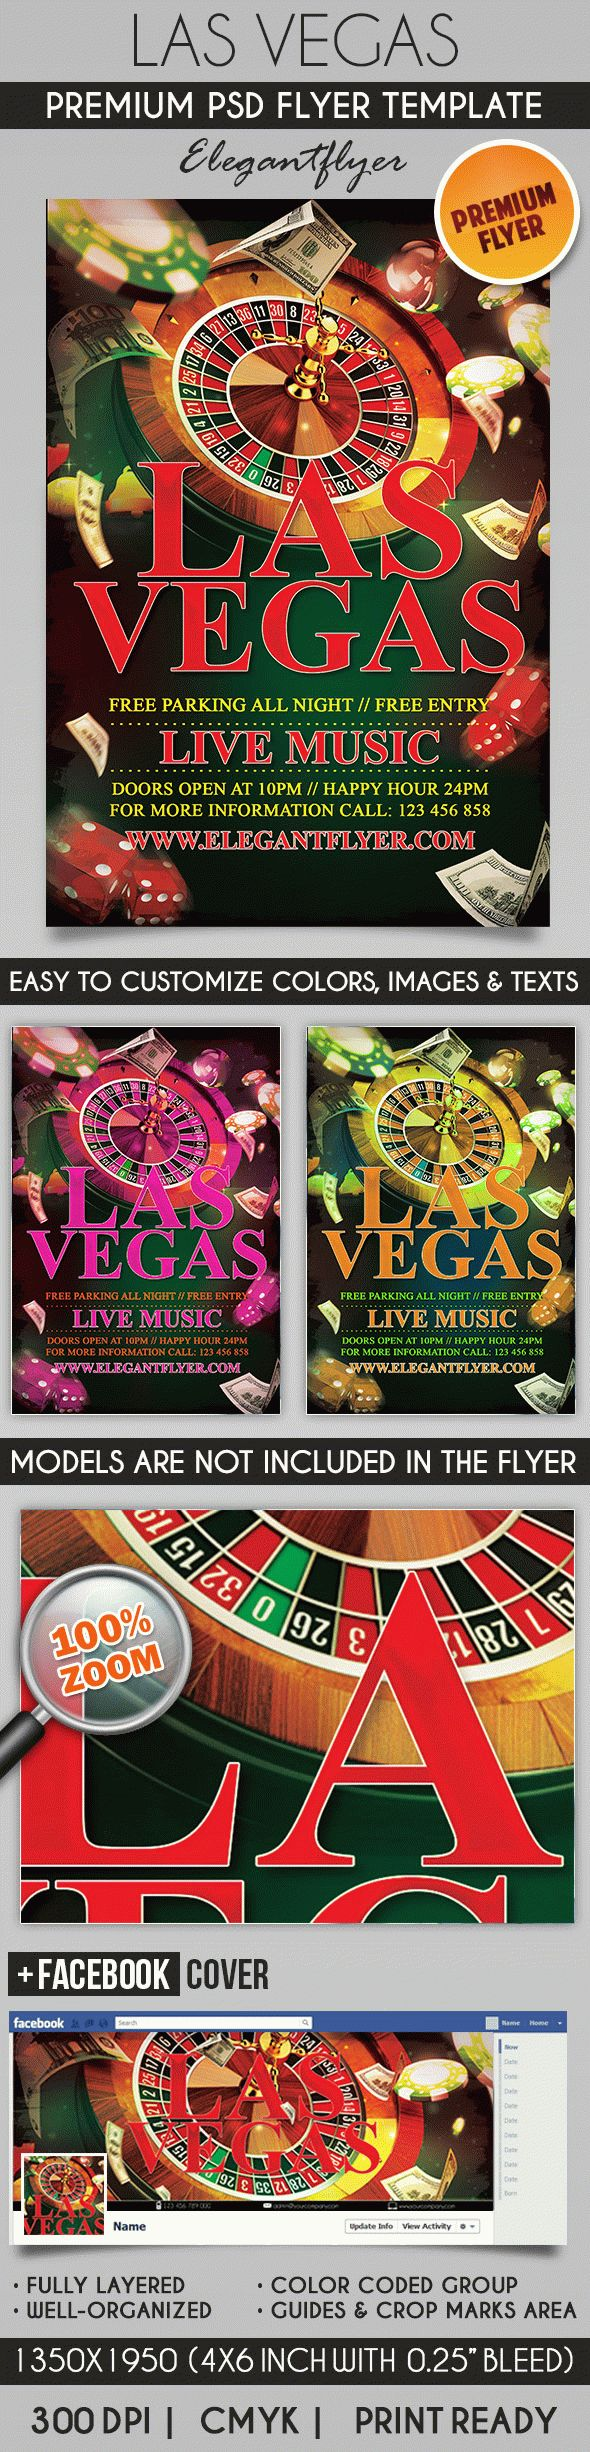 Las Vegas – Flyer PSD Template + Facebook Cover